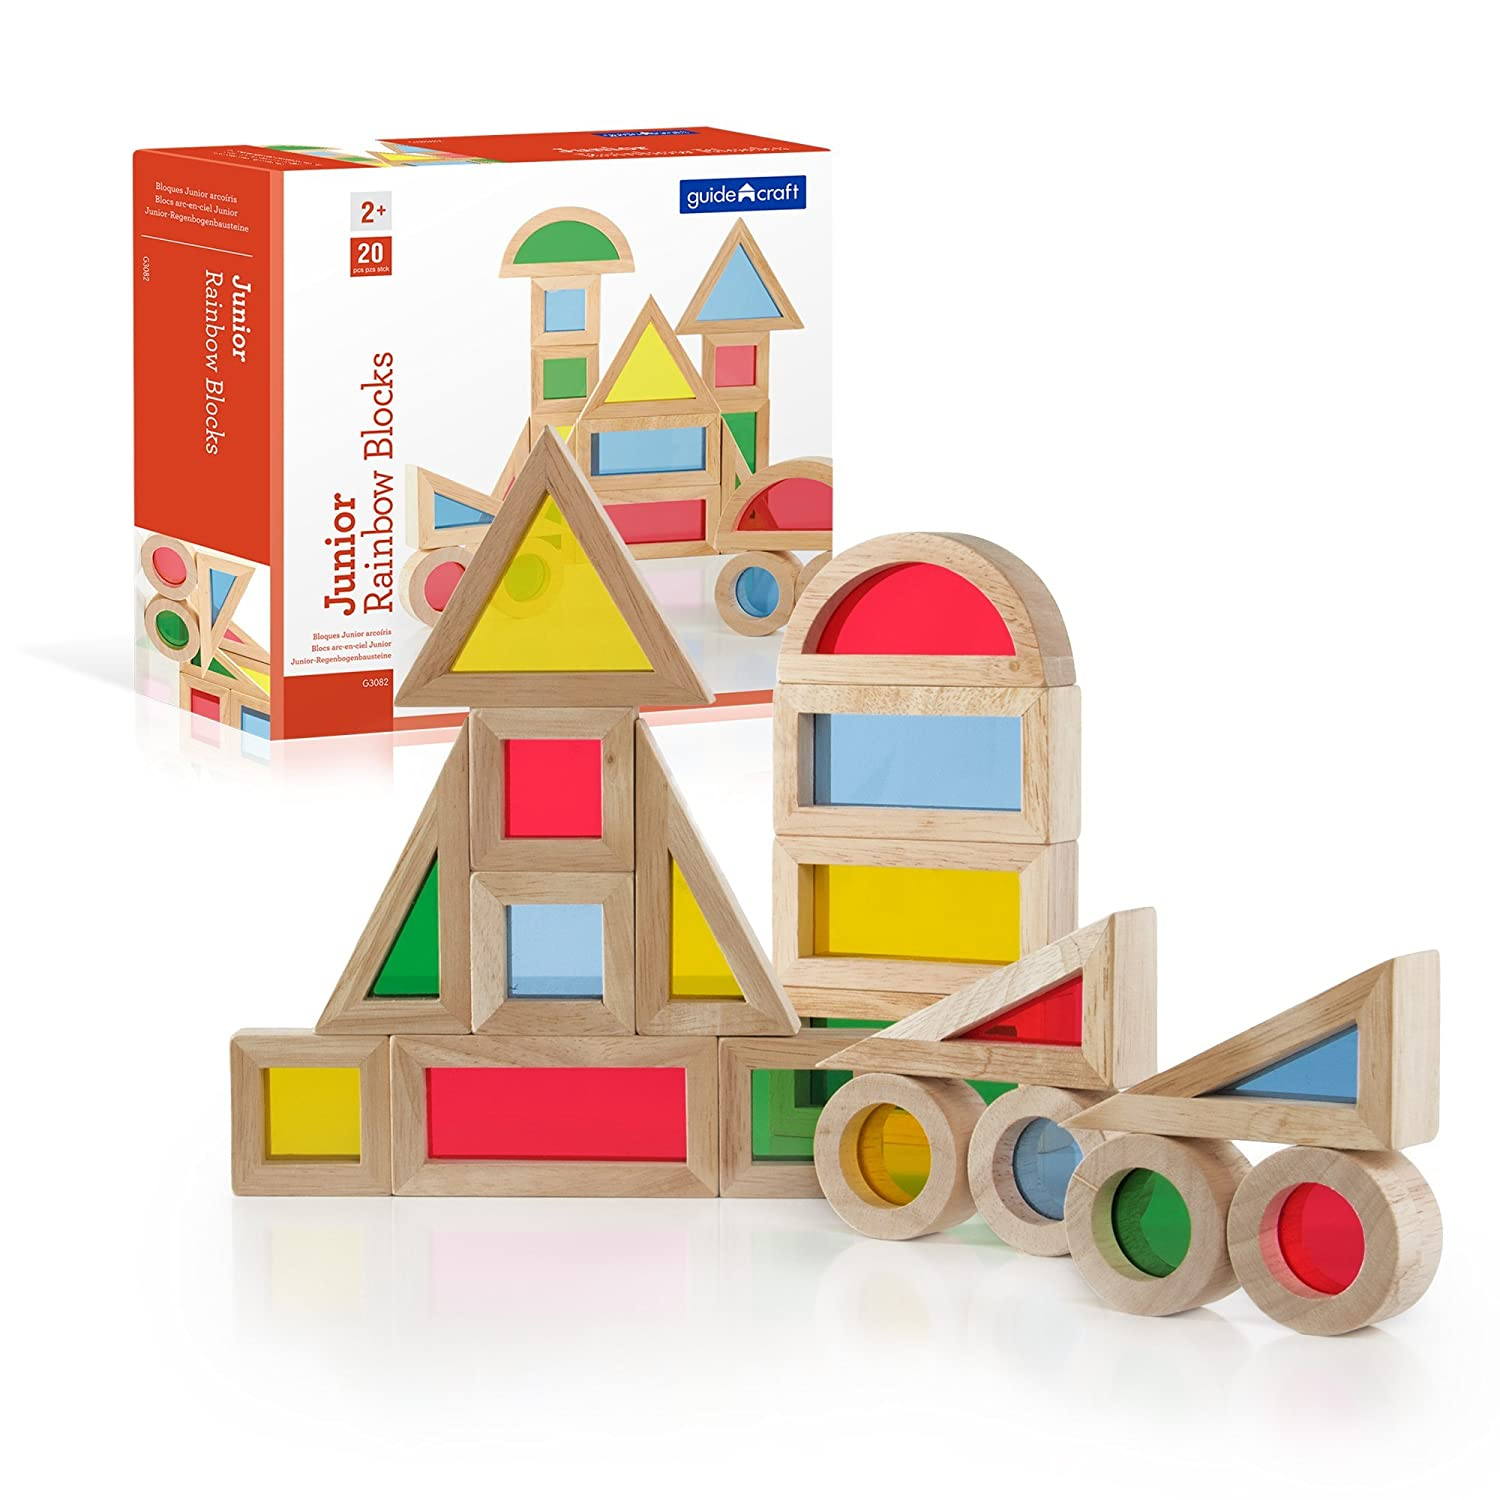 Top 7 Best Baby Blocks Reviews in 2019 1